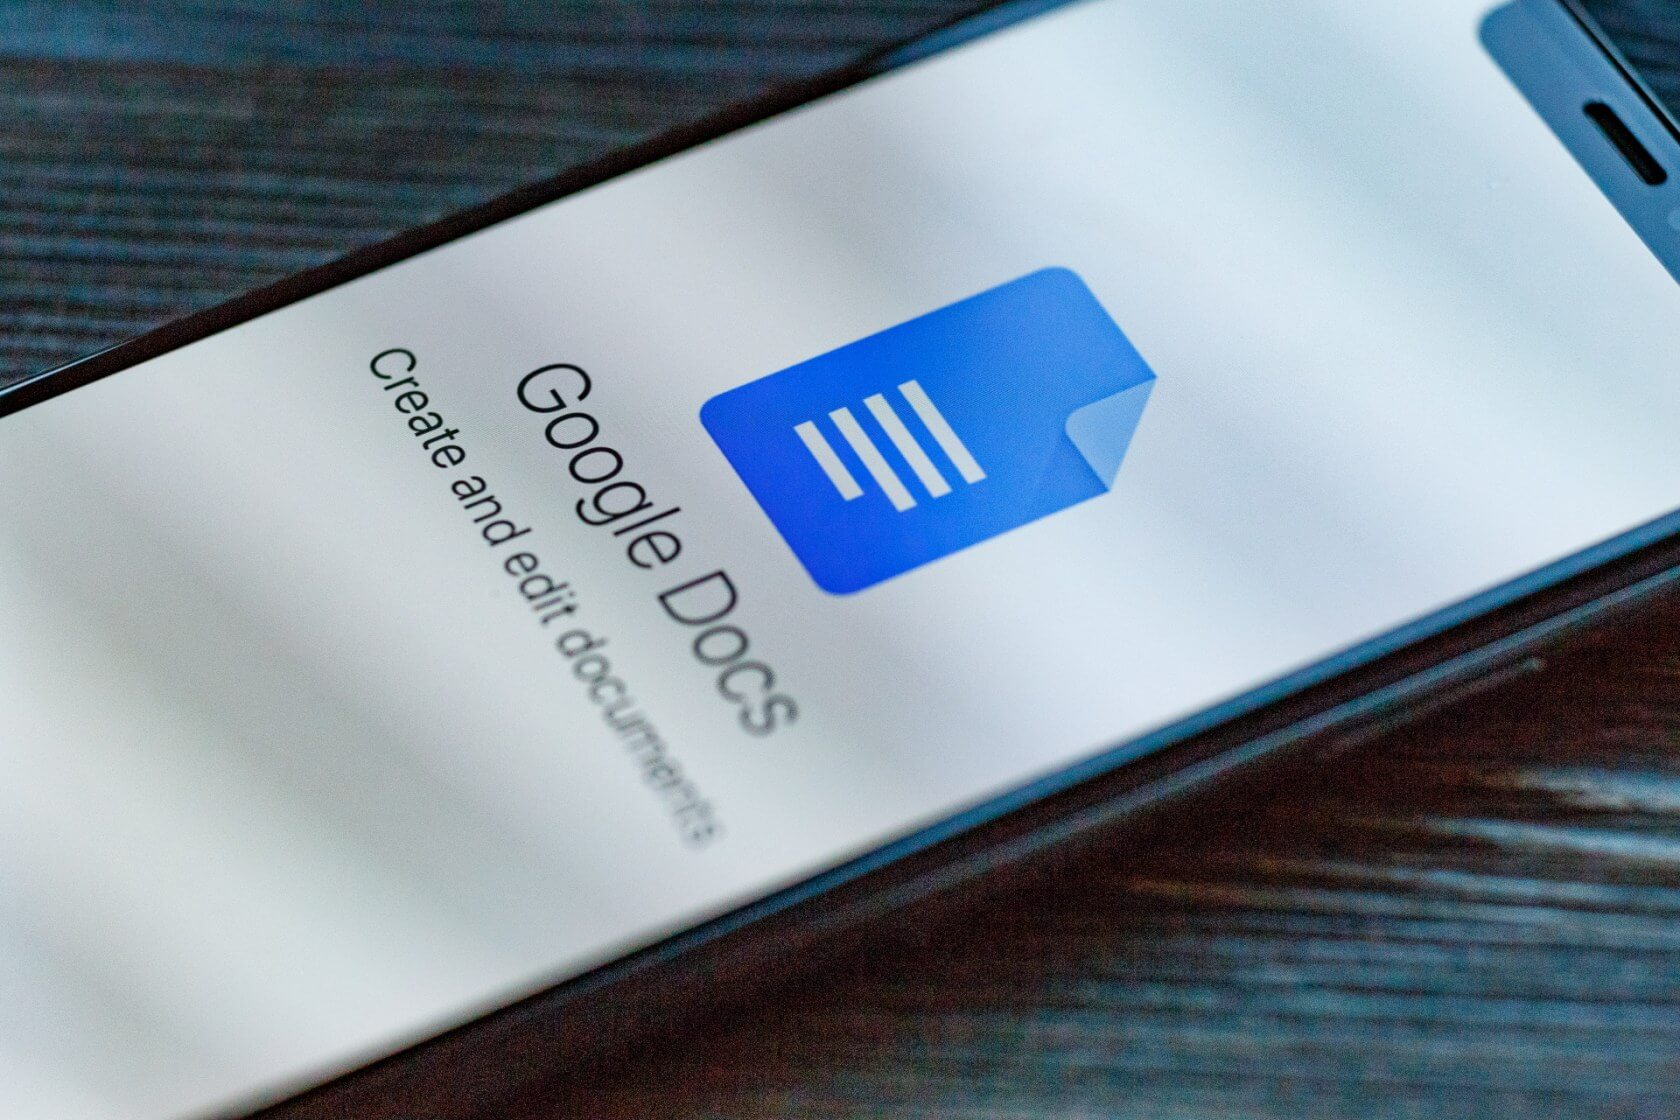 Google is bringing Gmail's 'Smart Compose' feature to Google Docs